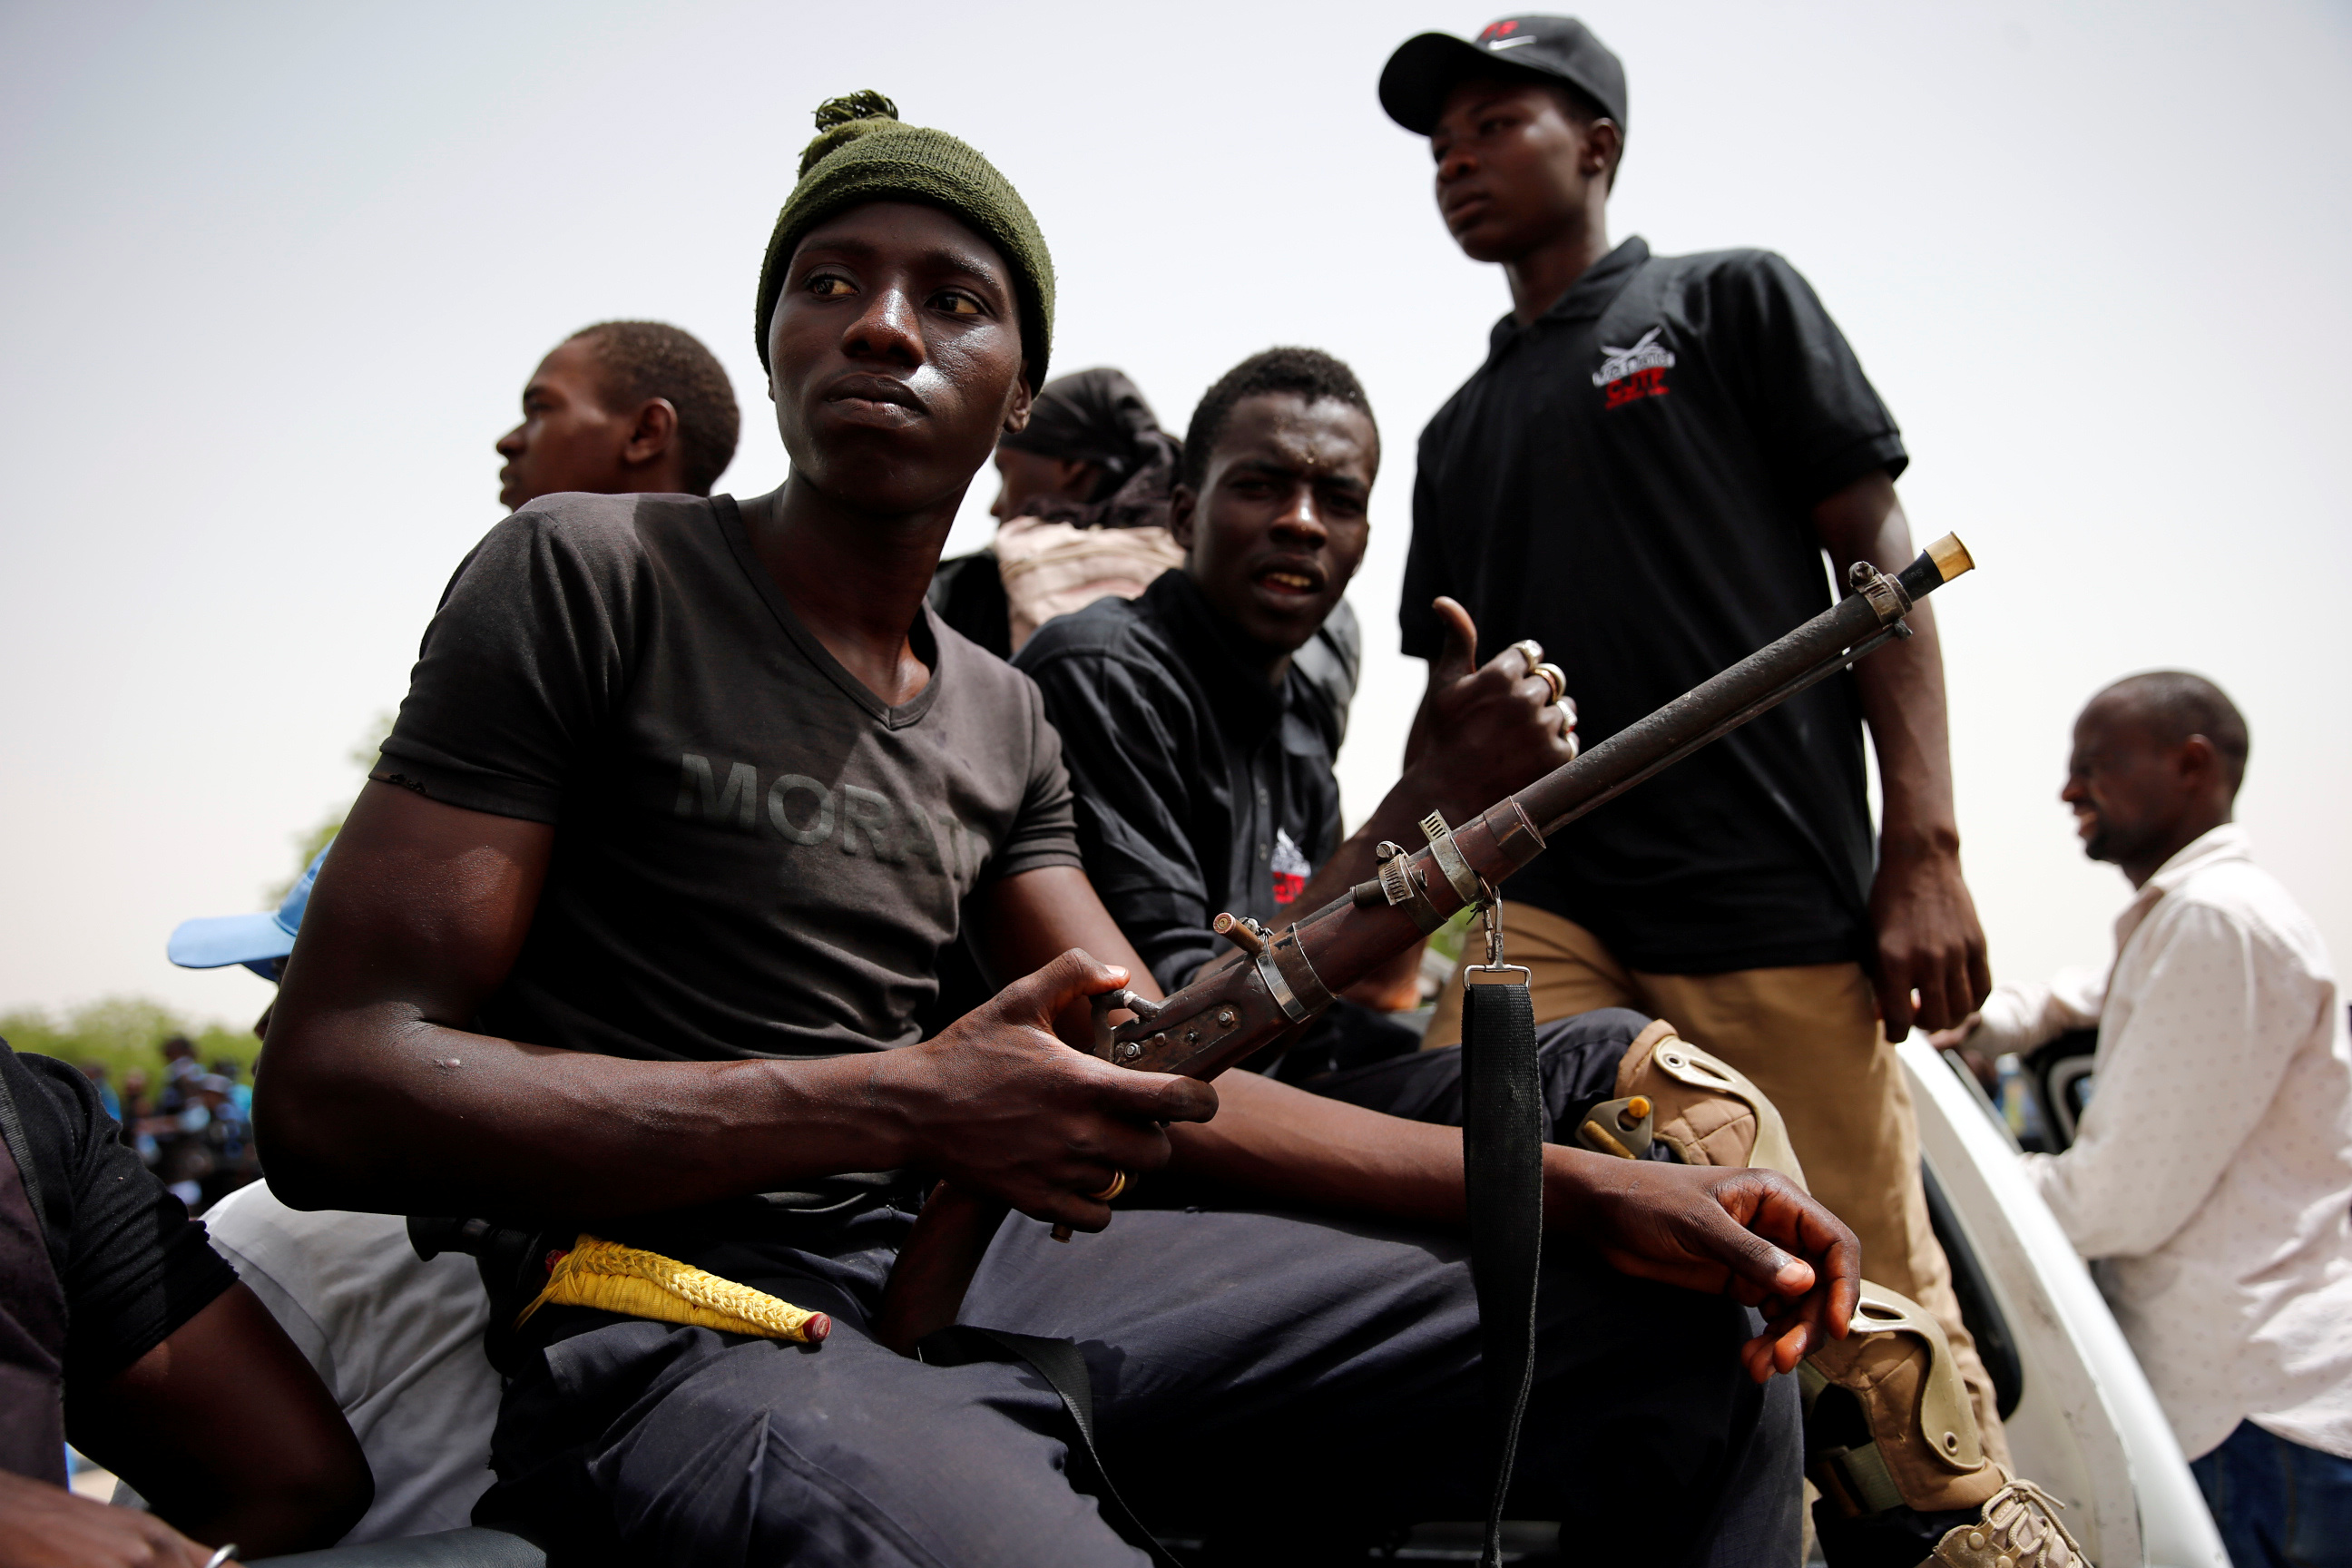 DATE IMPORTED: June 15, 2017 Members of the local militia, otherwise known as CJTF, sit in the back of a truck during a patrol in the city of Maiduguri, northern Nigeria June 9, 2017. Picture taken June 9, 2017. REUTERS/Akintunde Akinleye.